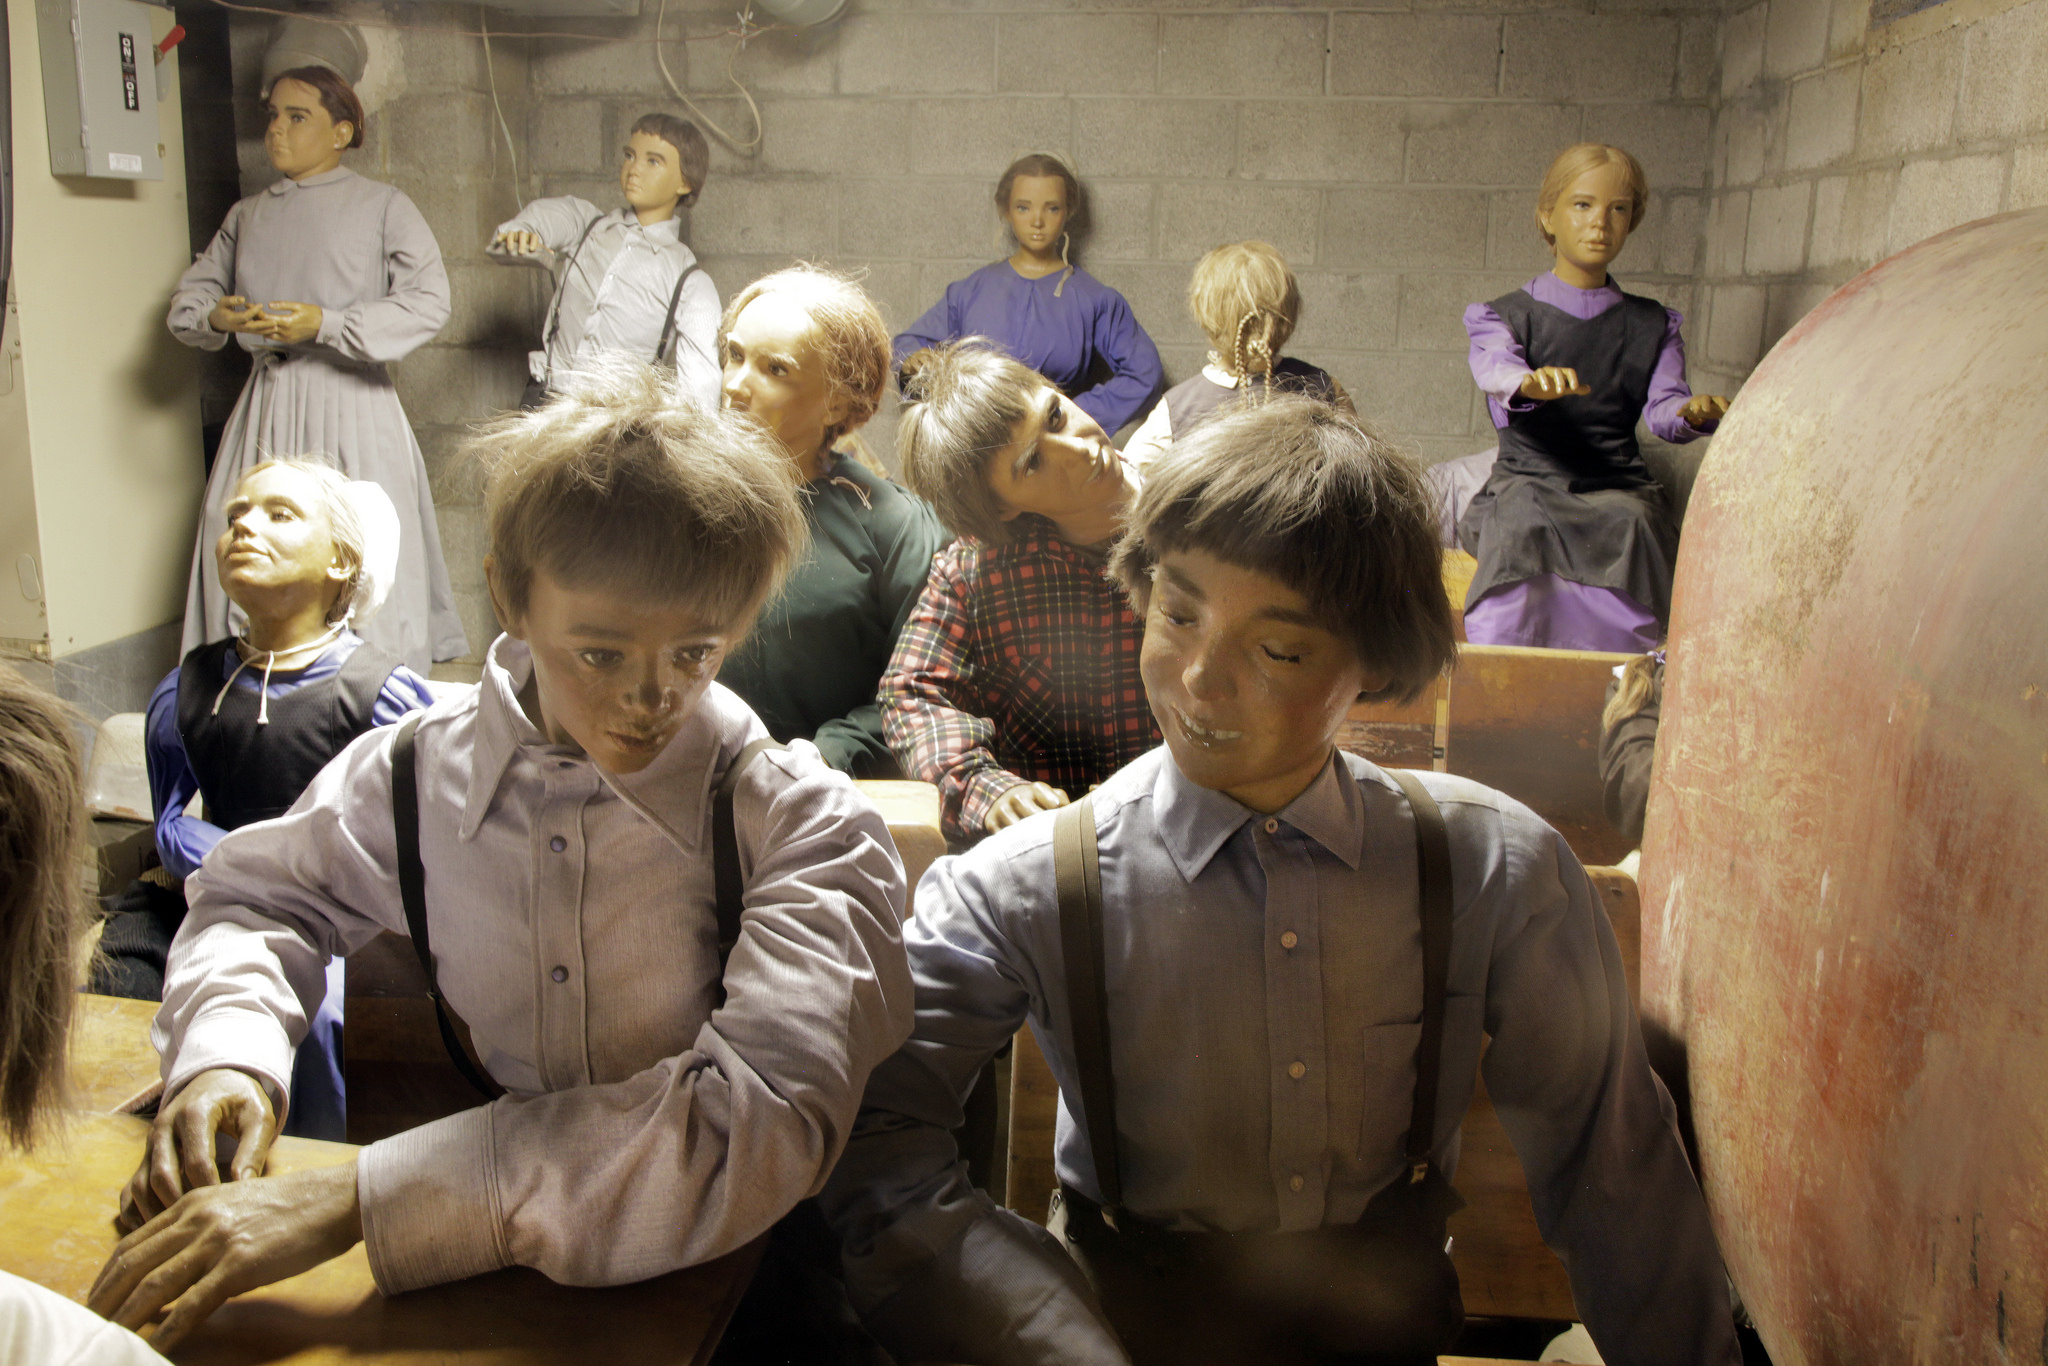 Amish wax museum